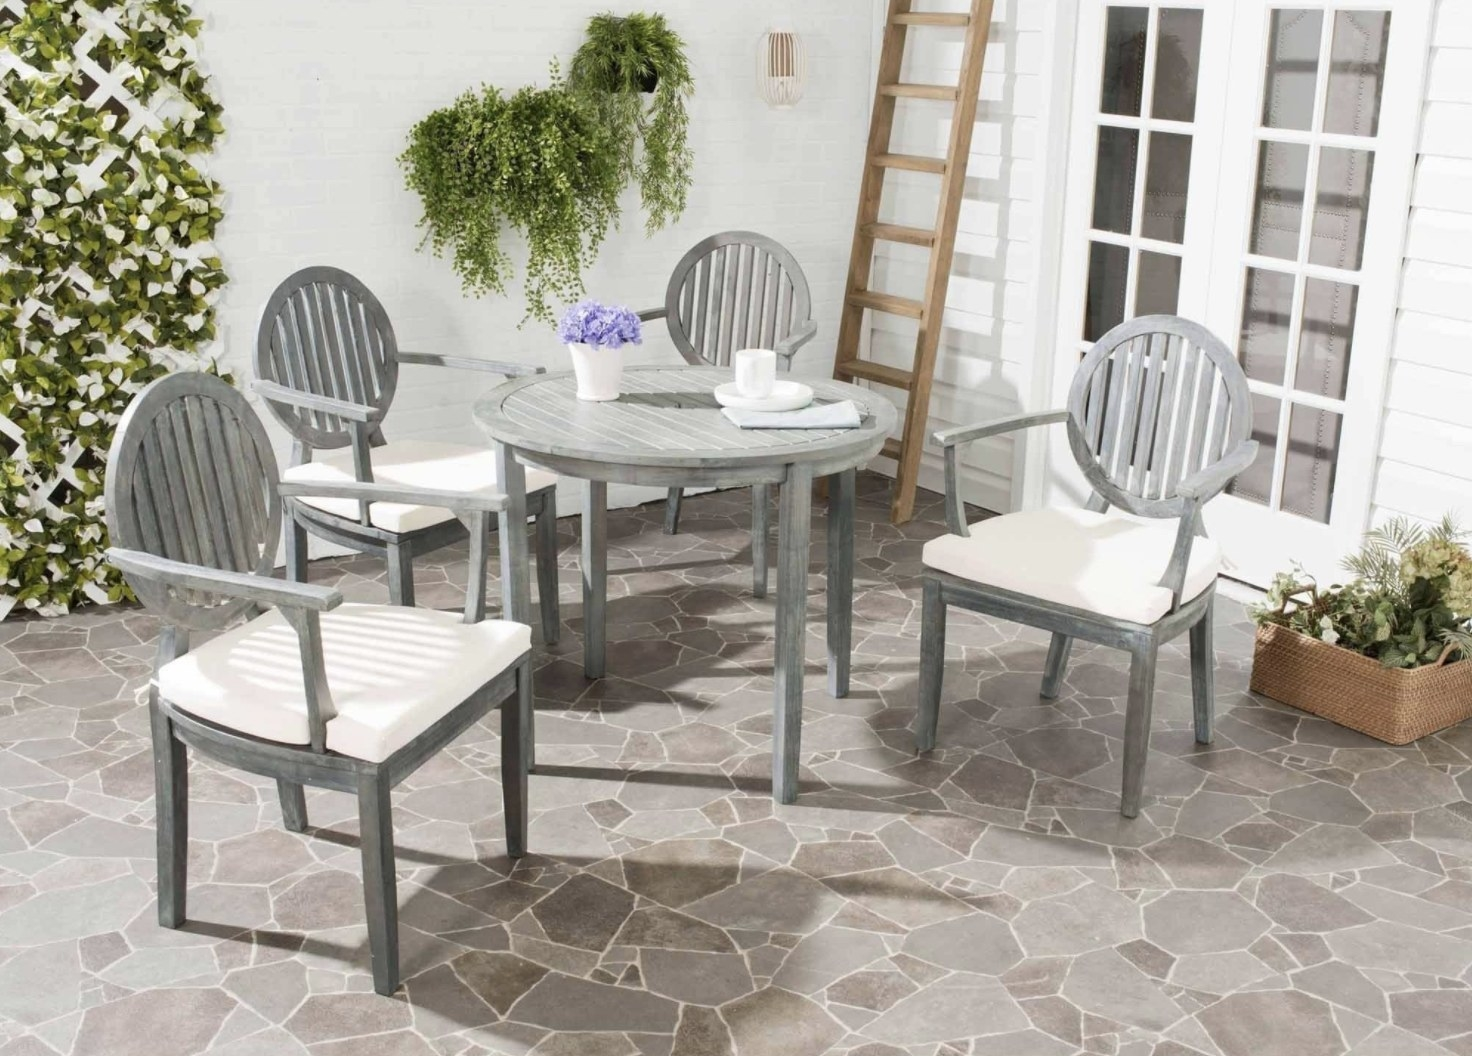 the dining set with grey wood and white seat cushions